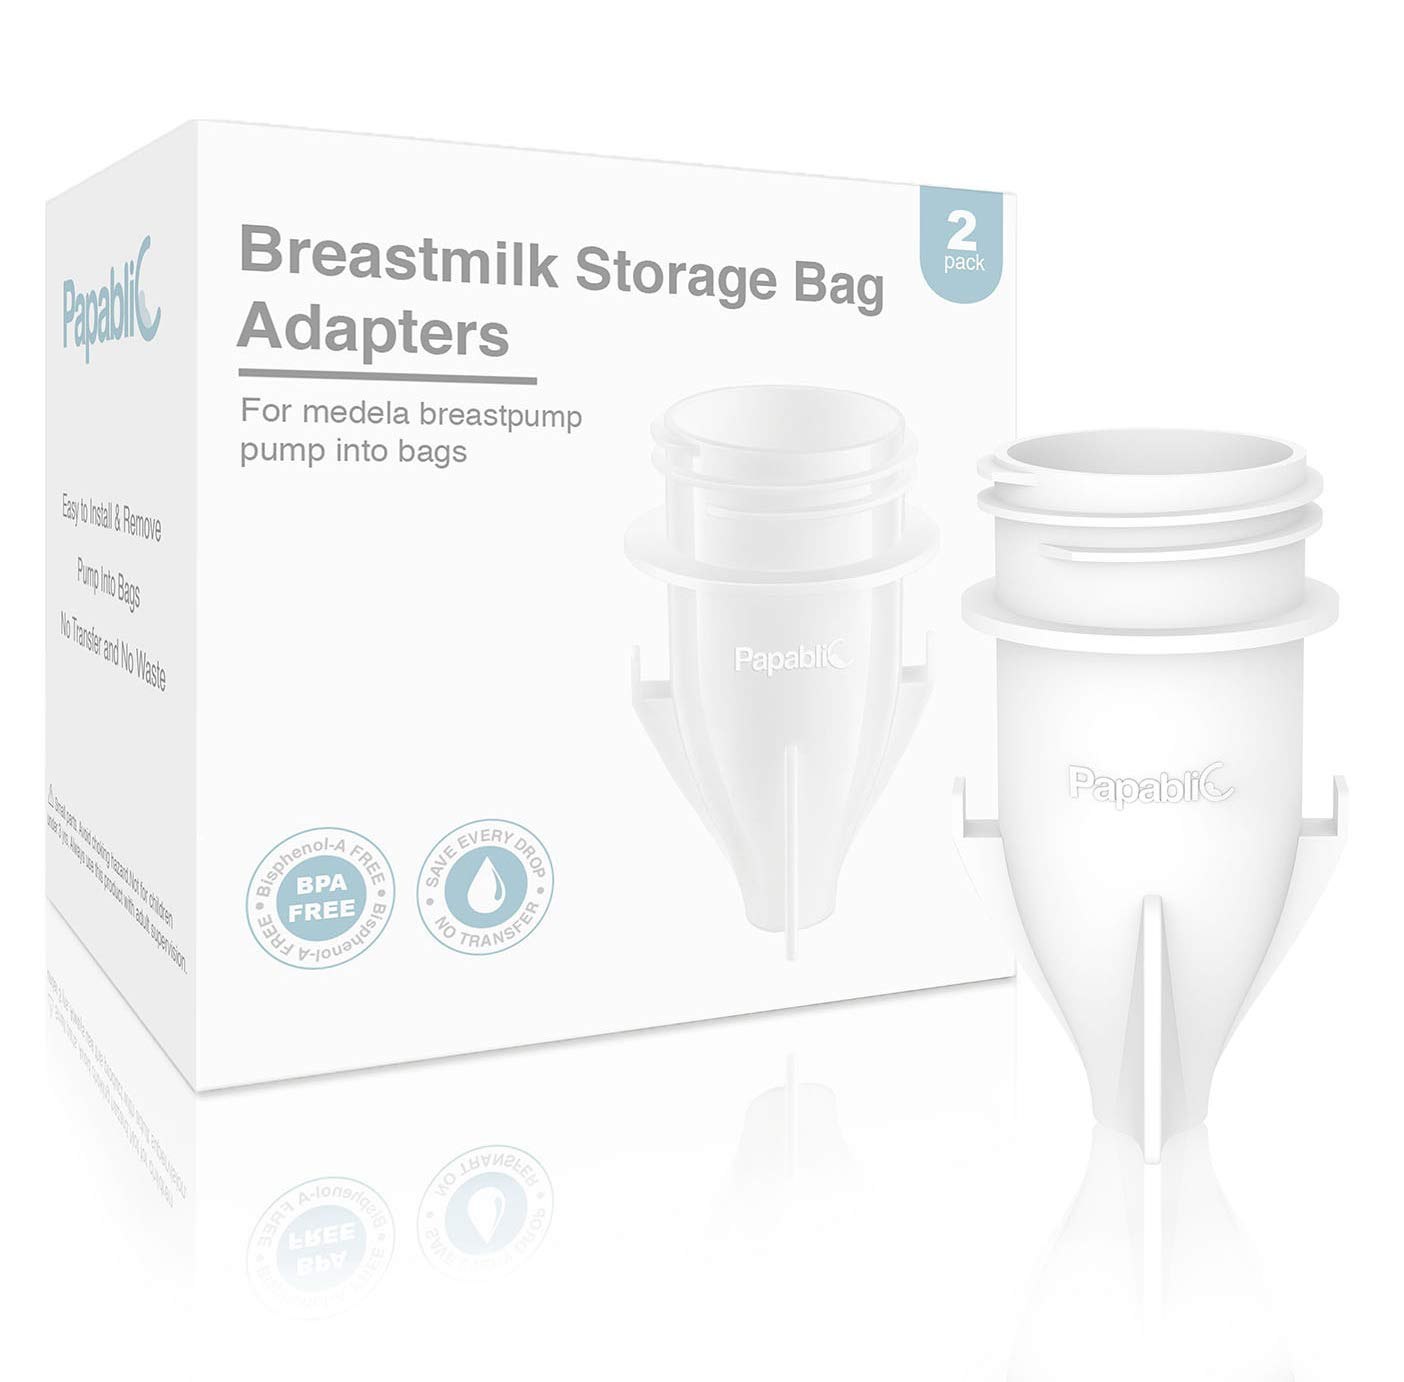 eff8e3c28d248 Amazon.com   Papablic Breastmilk Storage Bag Adapters for Ameda ...